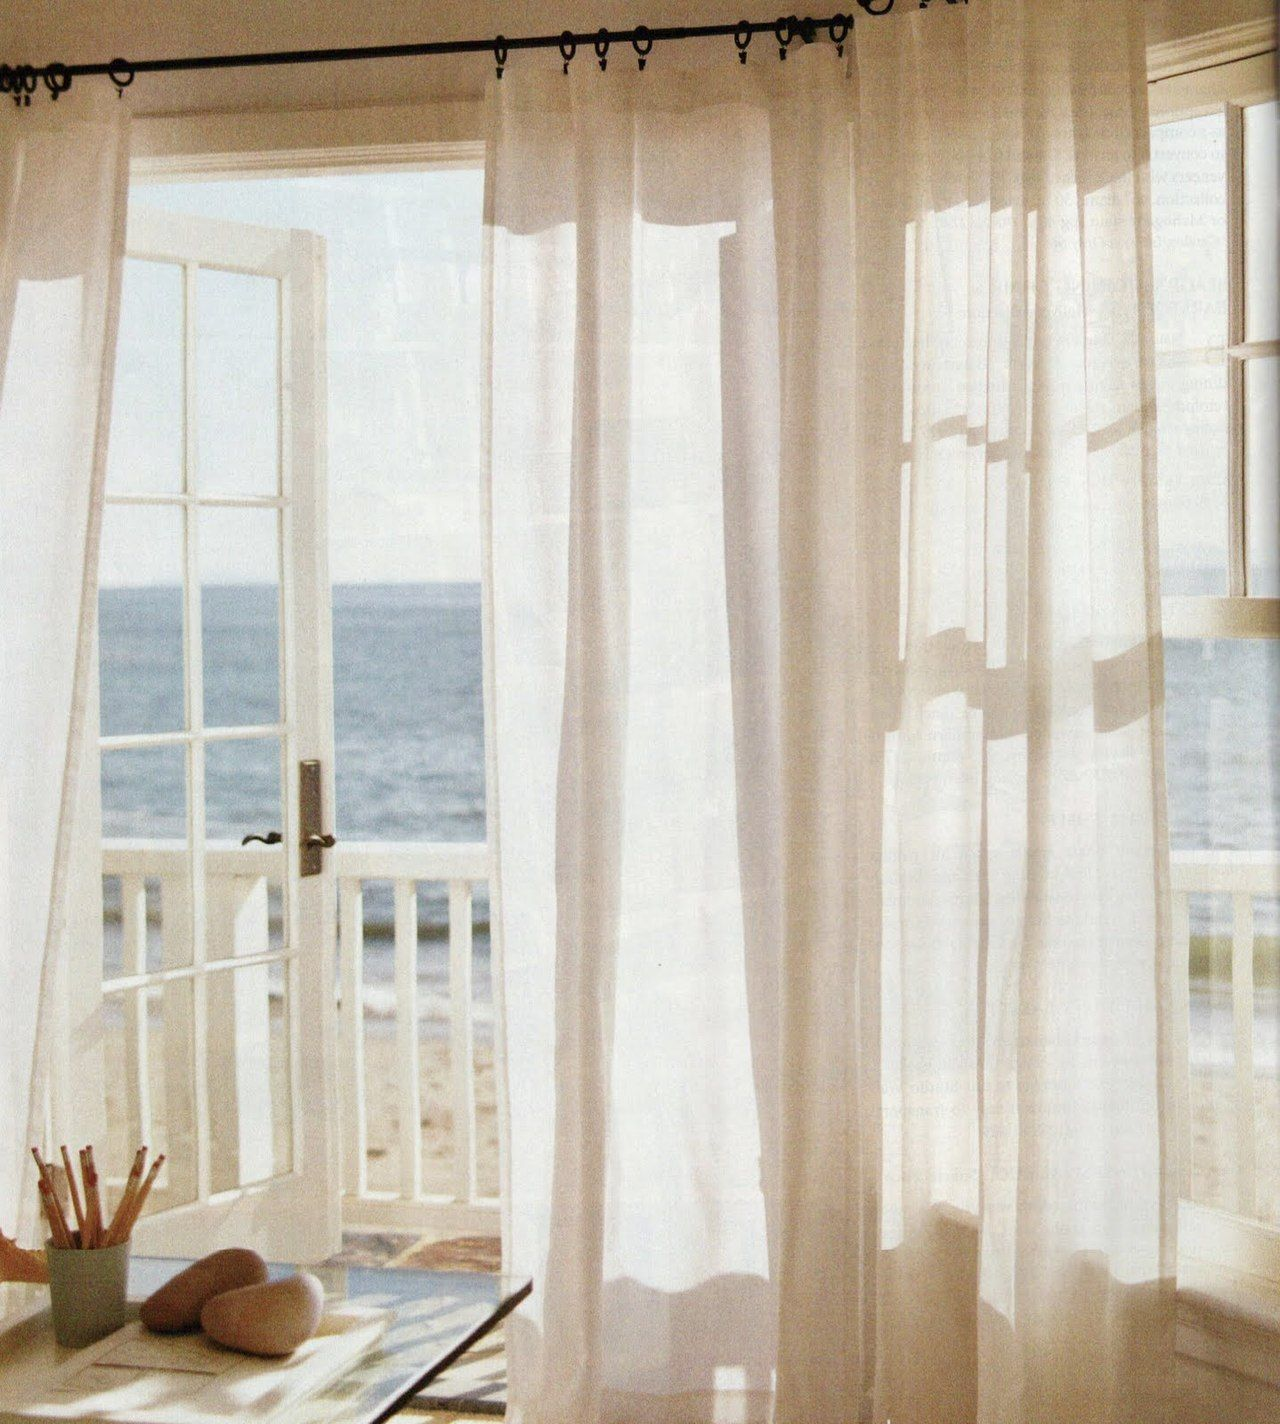 Curtain For Balcony: Breezy Home Office...Sheer Curtains And French Doors